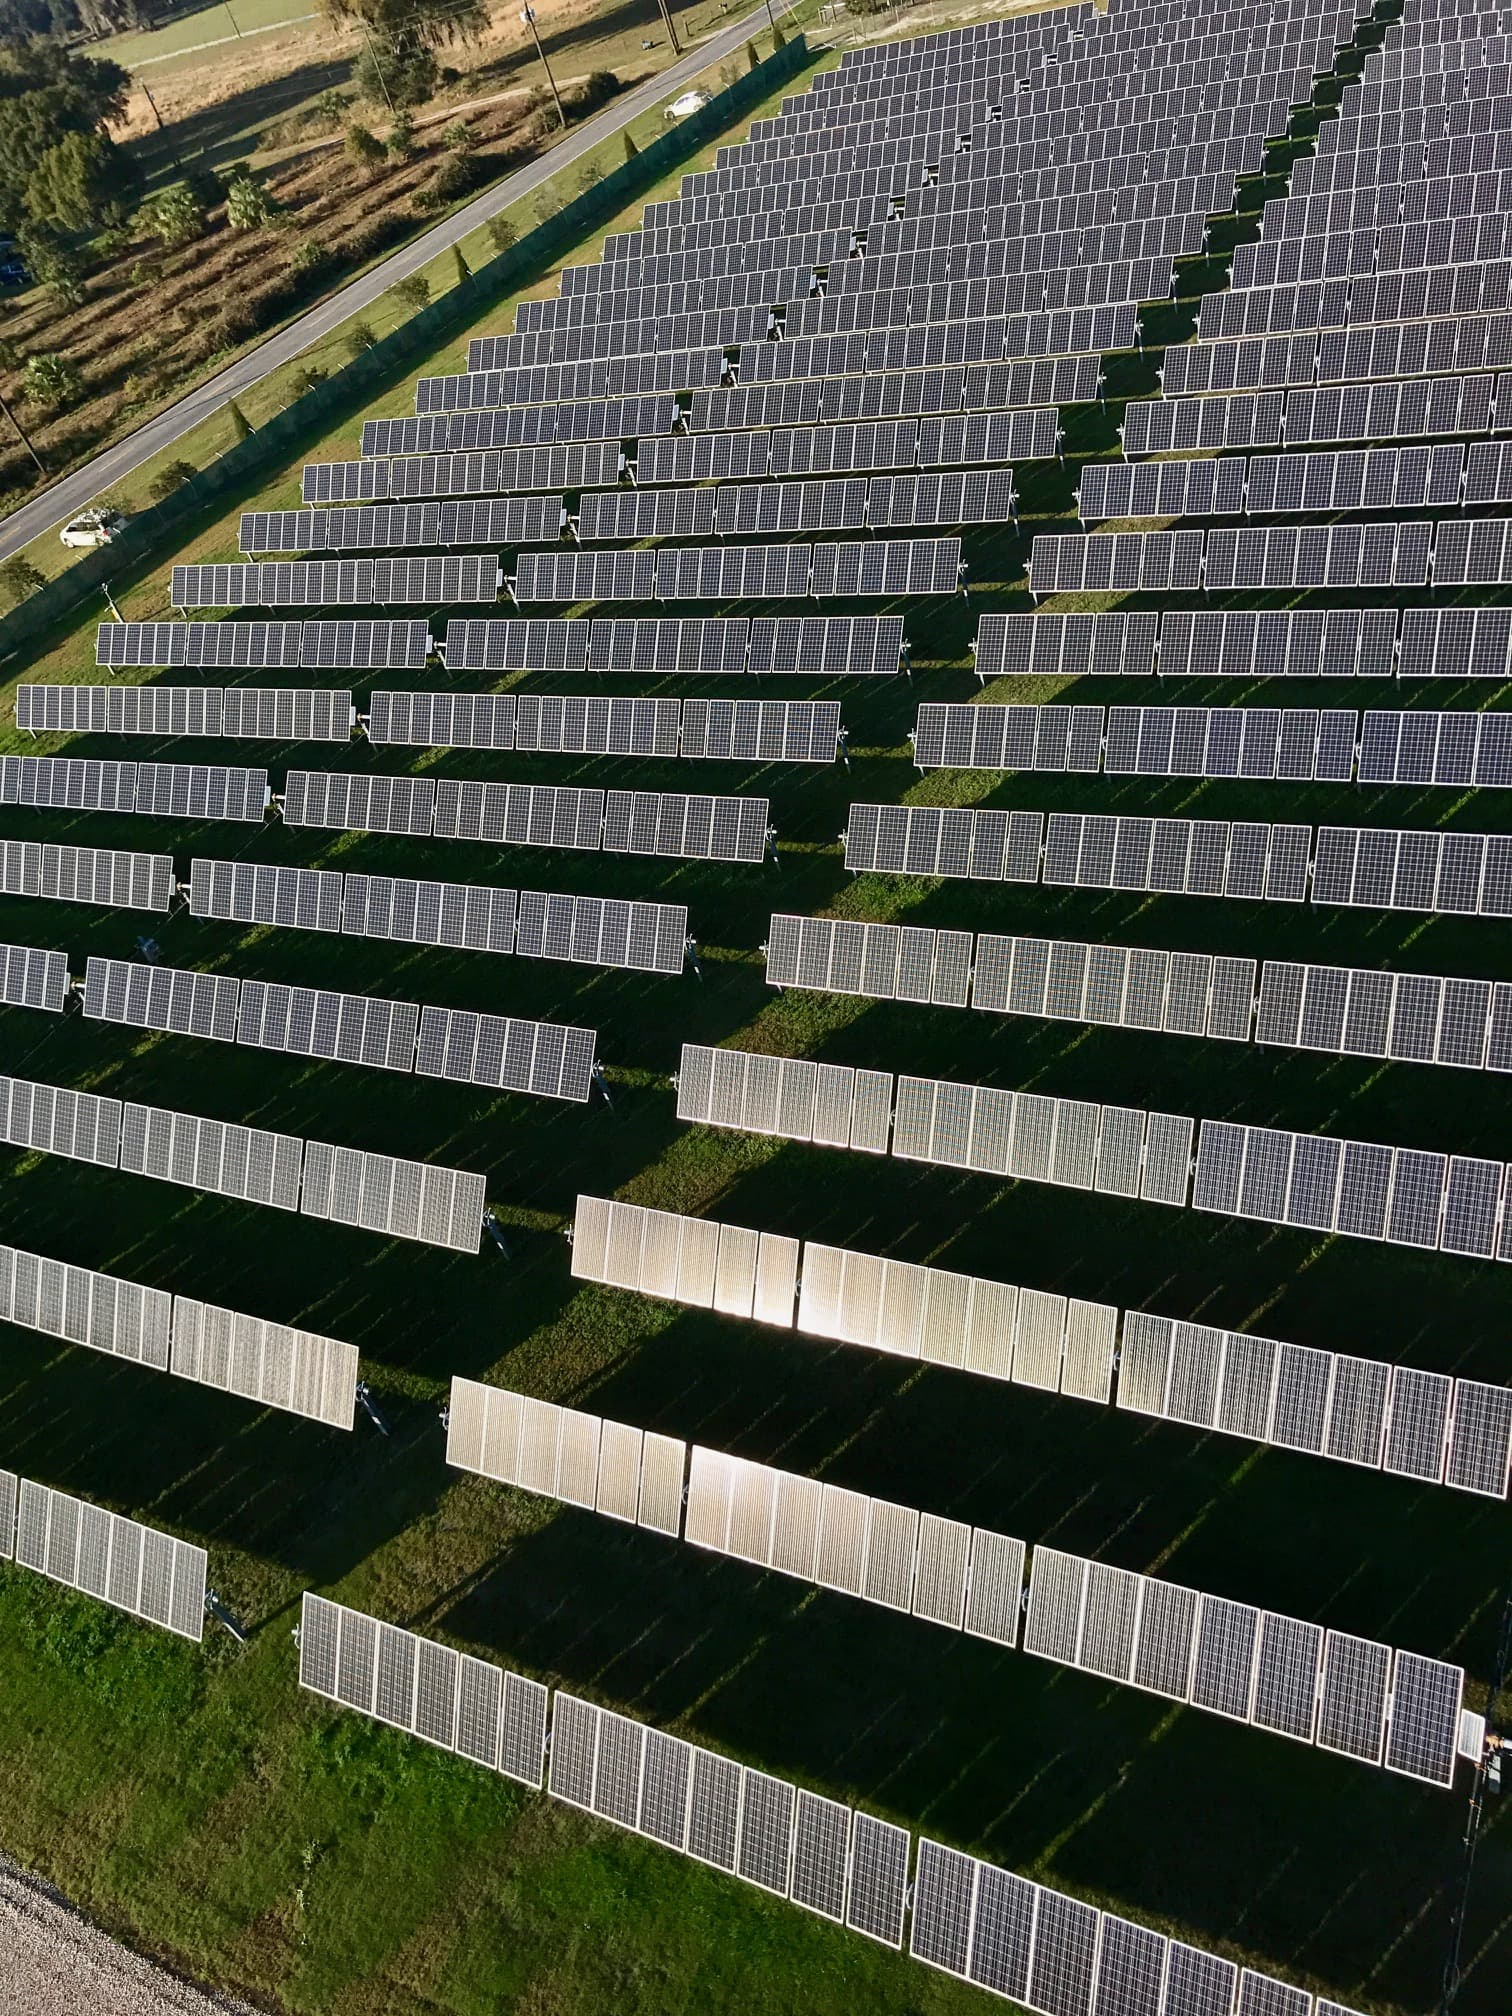 NRG NRG Energy Completes Its First Florida Solar Project